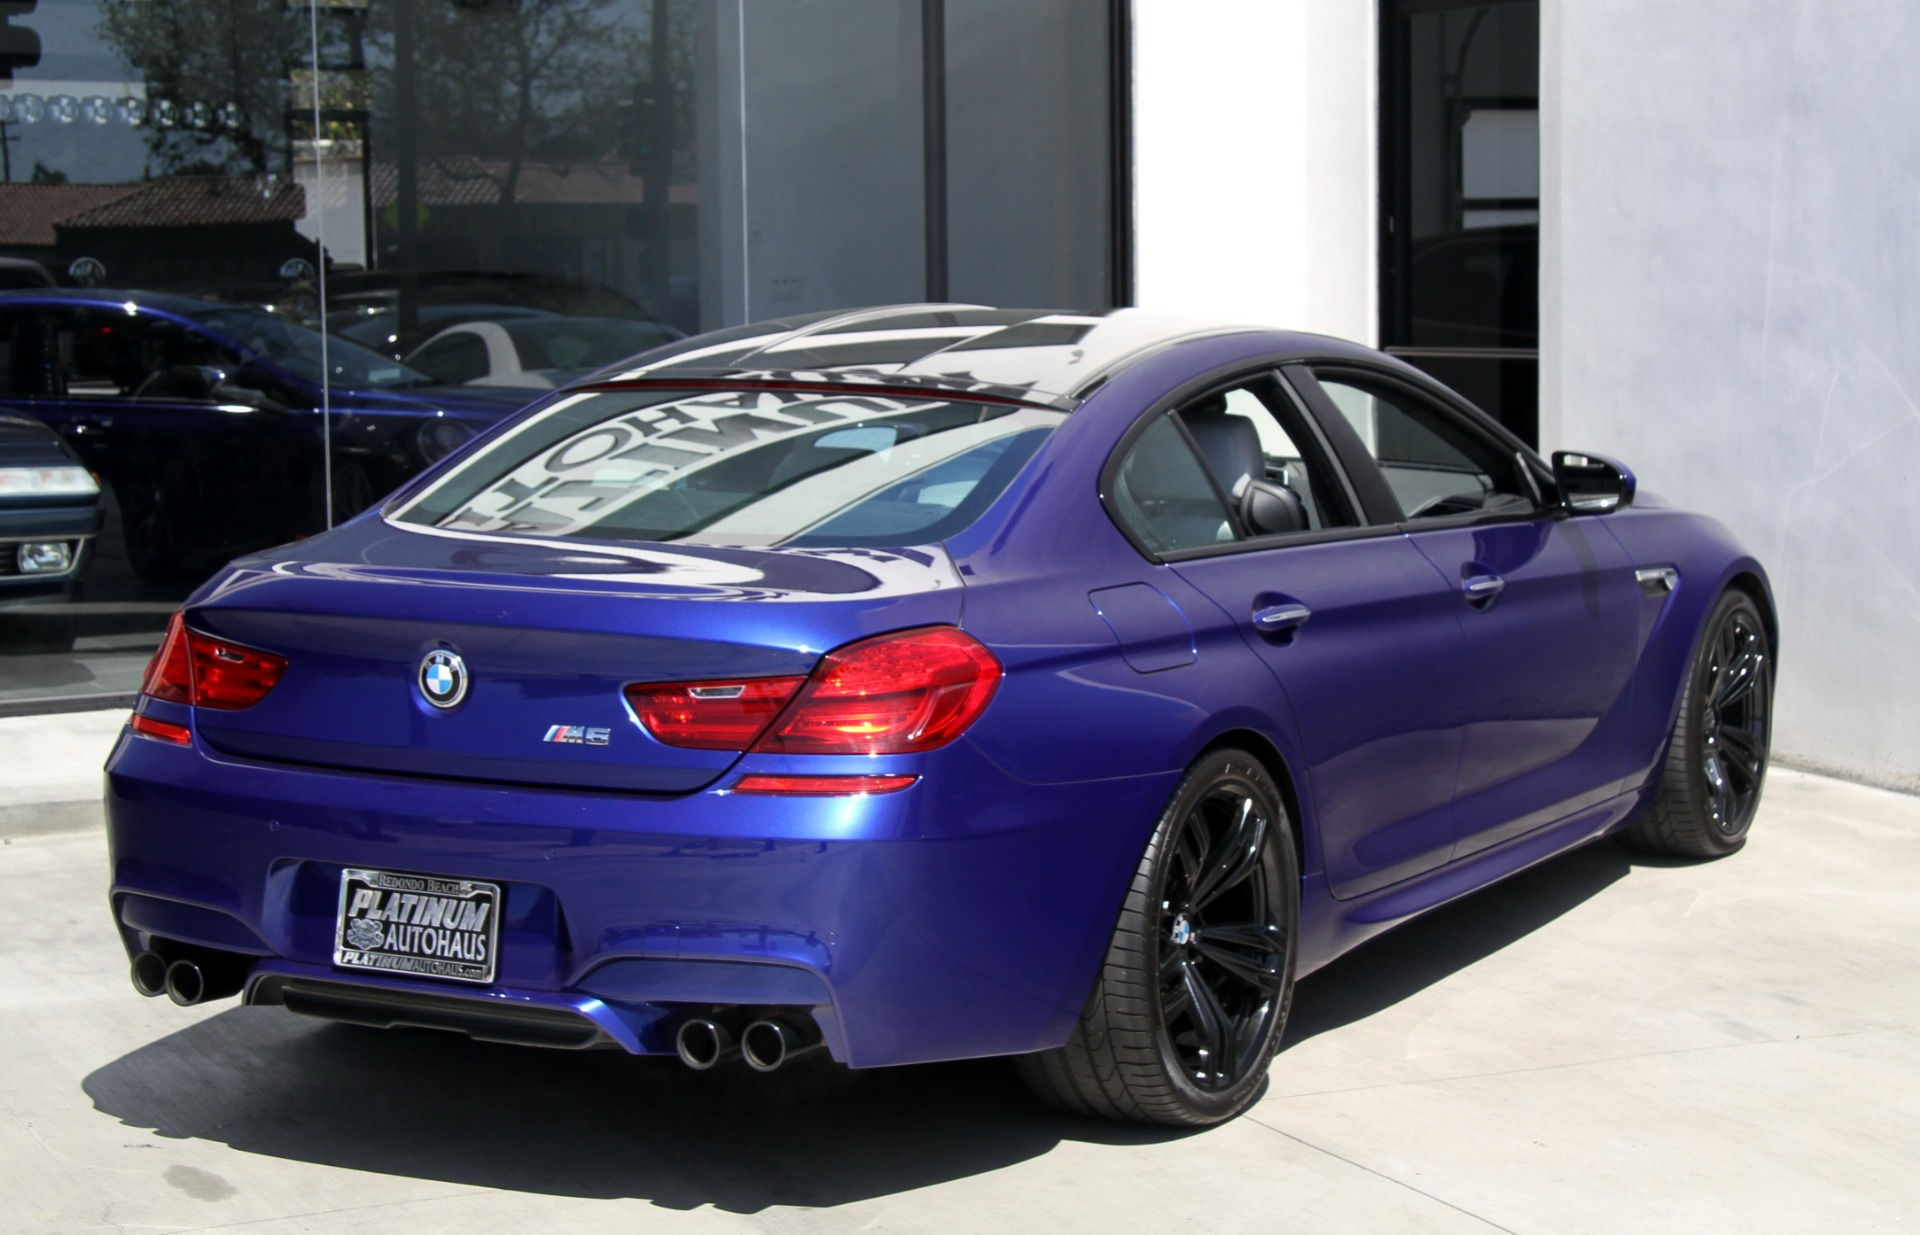 BMW Dealership Near Me >> 2014 BMW M6 Gran Coupe ** Competition Pkg ** Stock # 6076 ...